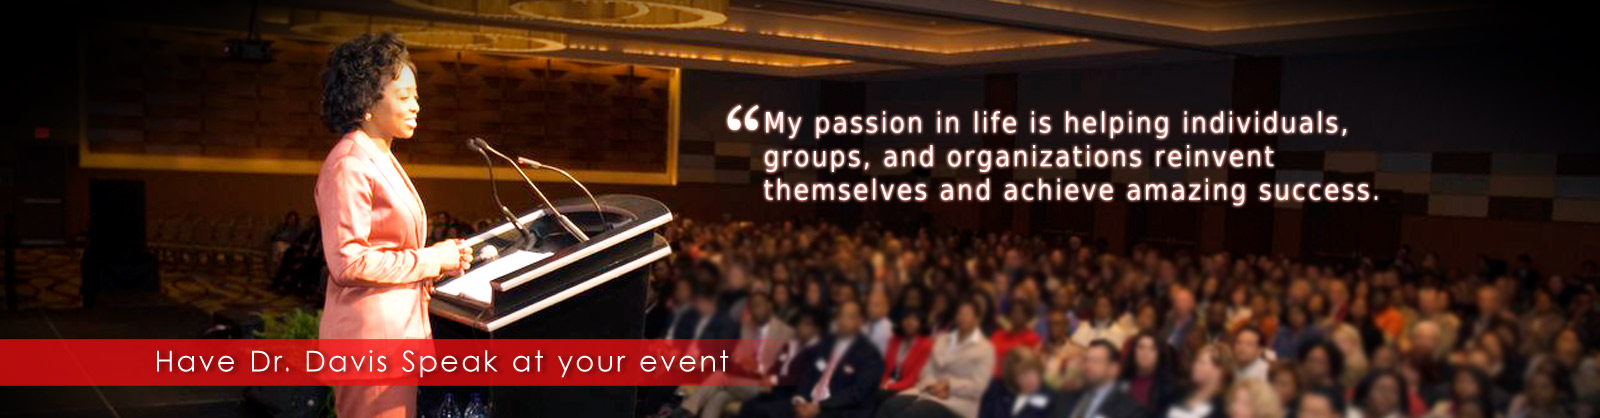 Have Dr. Davis speak at your event